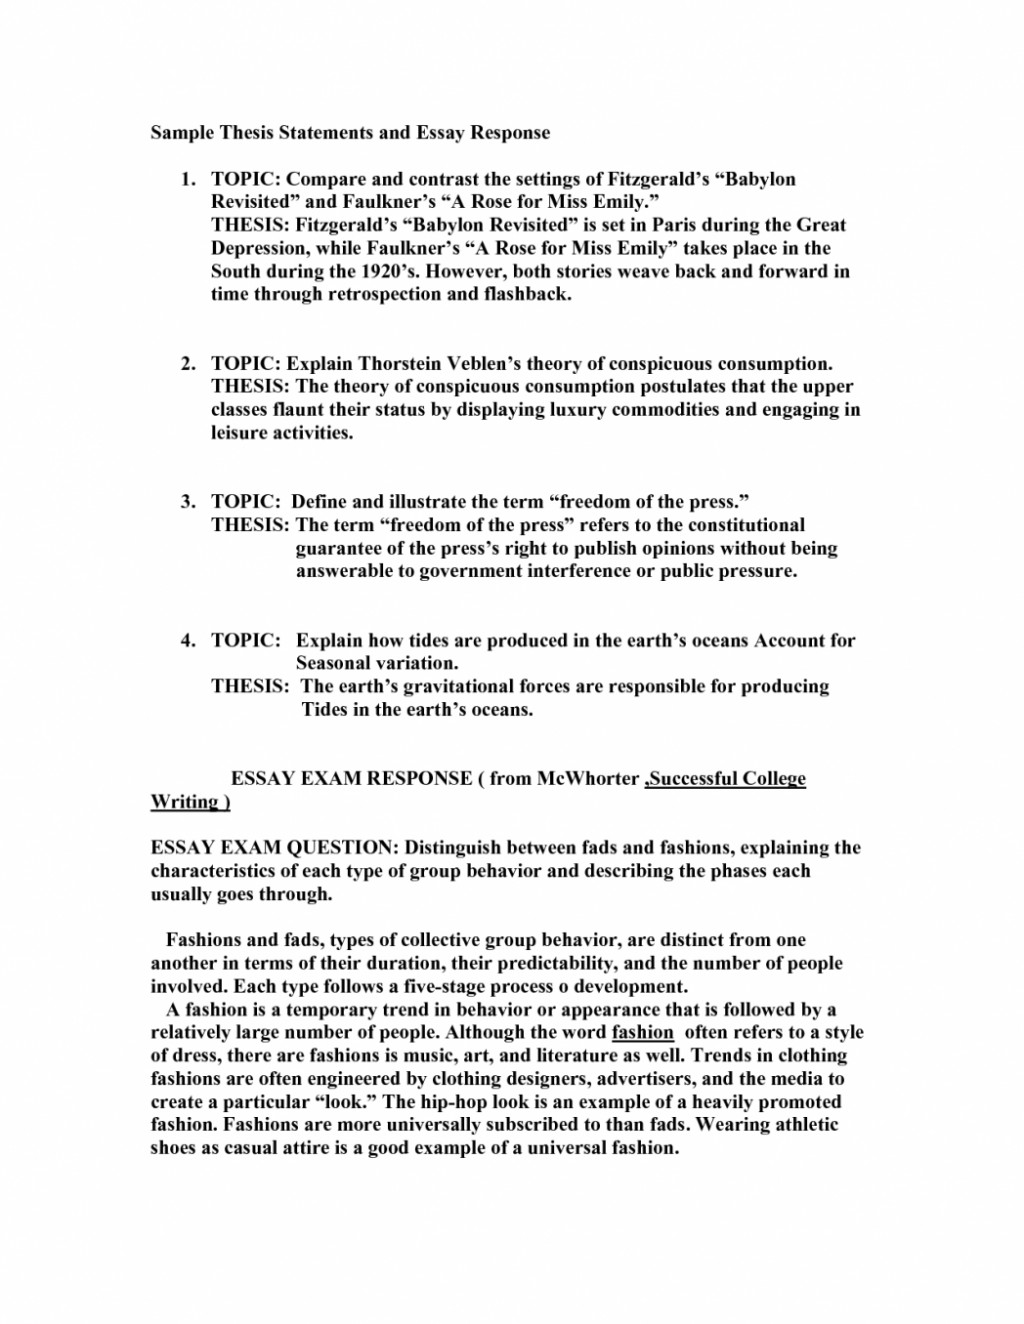 011 How To Write Thesis For An Essay Example Statement Of In About Yourself 6na1p Argumentative Step By Expository High Schoolpt Informative Analysis Unique A Exploratory Evaluation Good Analytical Large